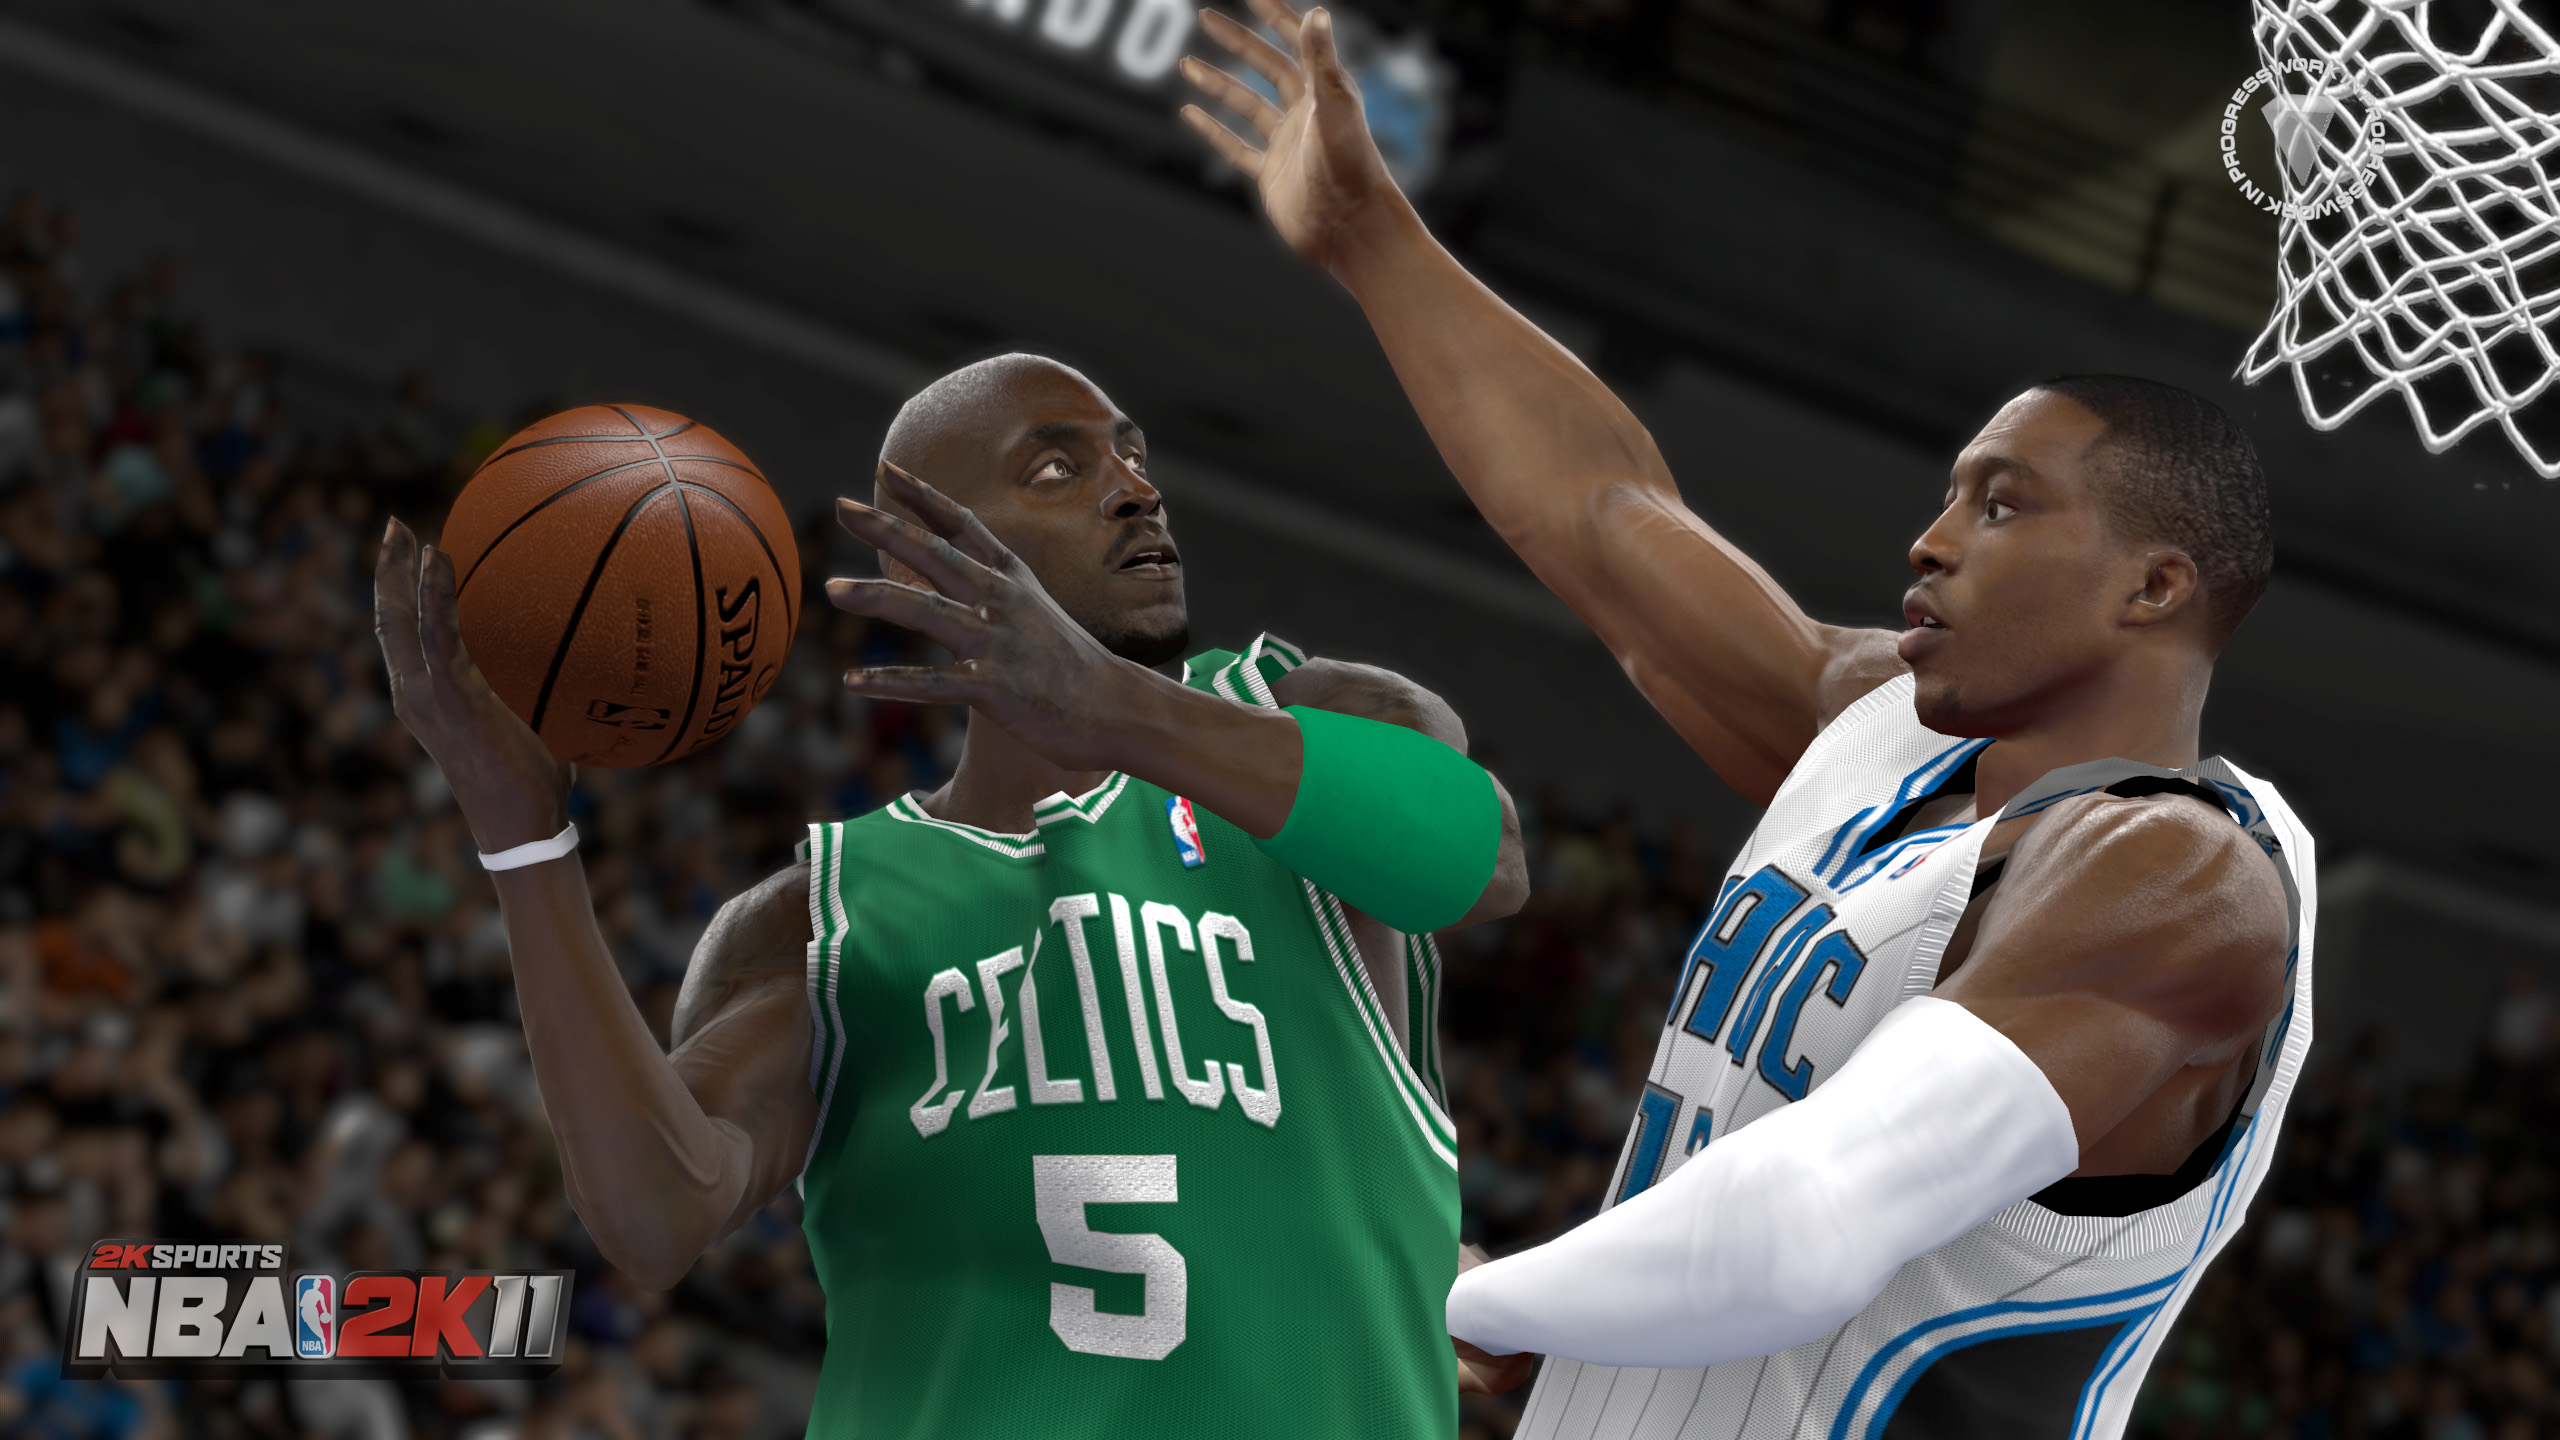 E3 2010 NBA 2K11 Fact Sheet